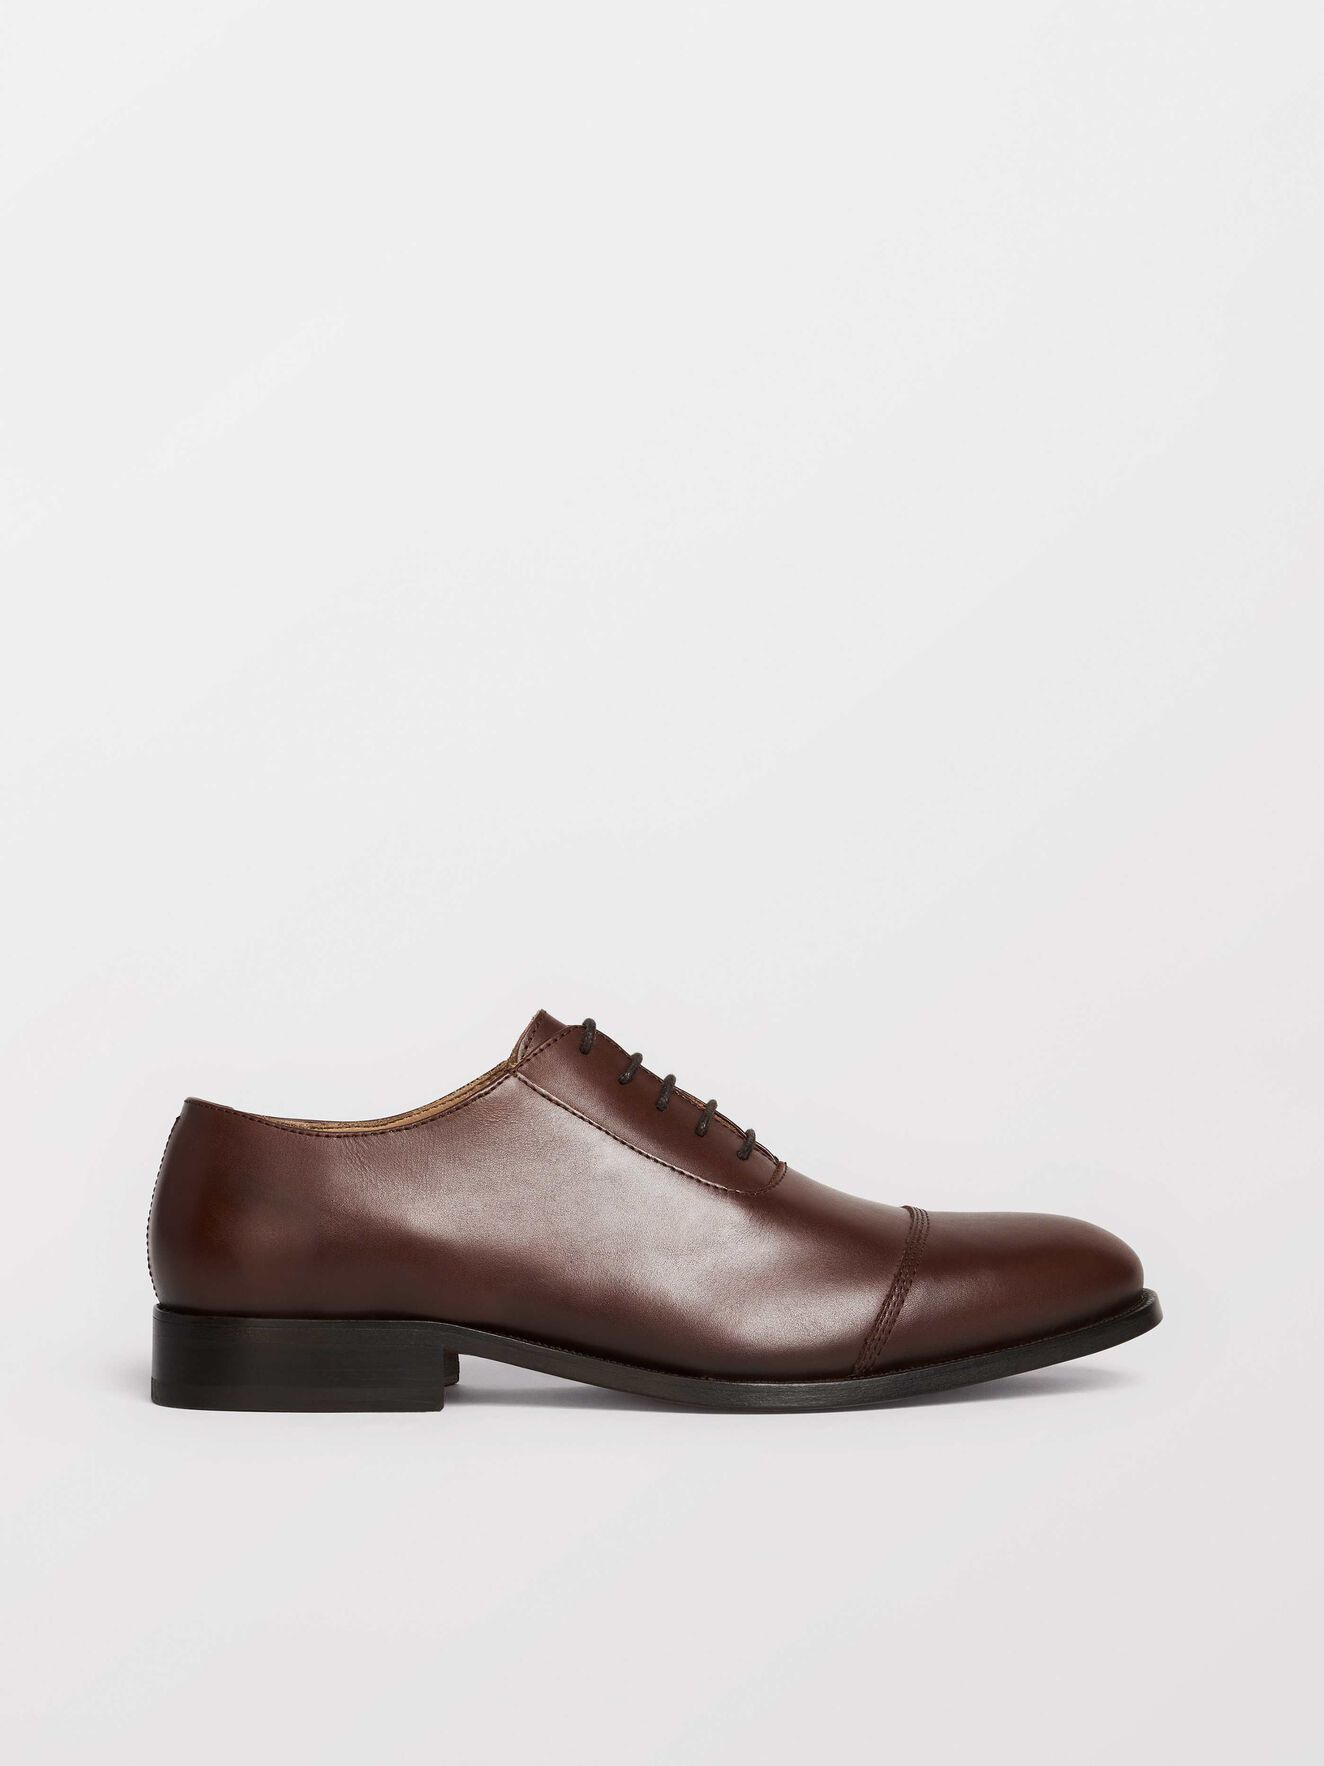 Lundh Shoe in Cognac from Tiger of Sweden